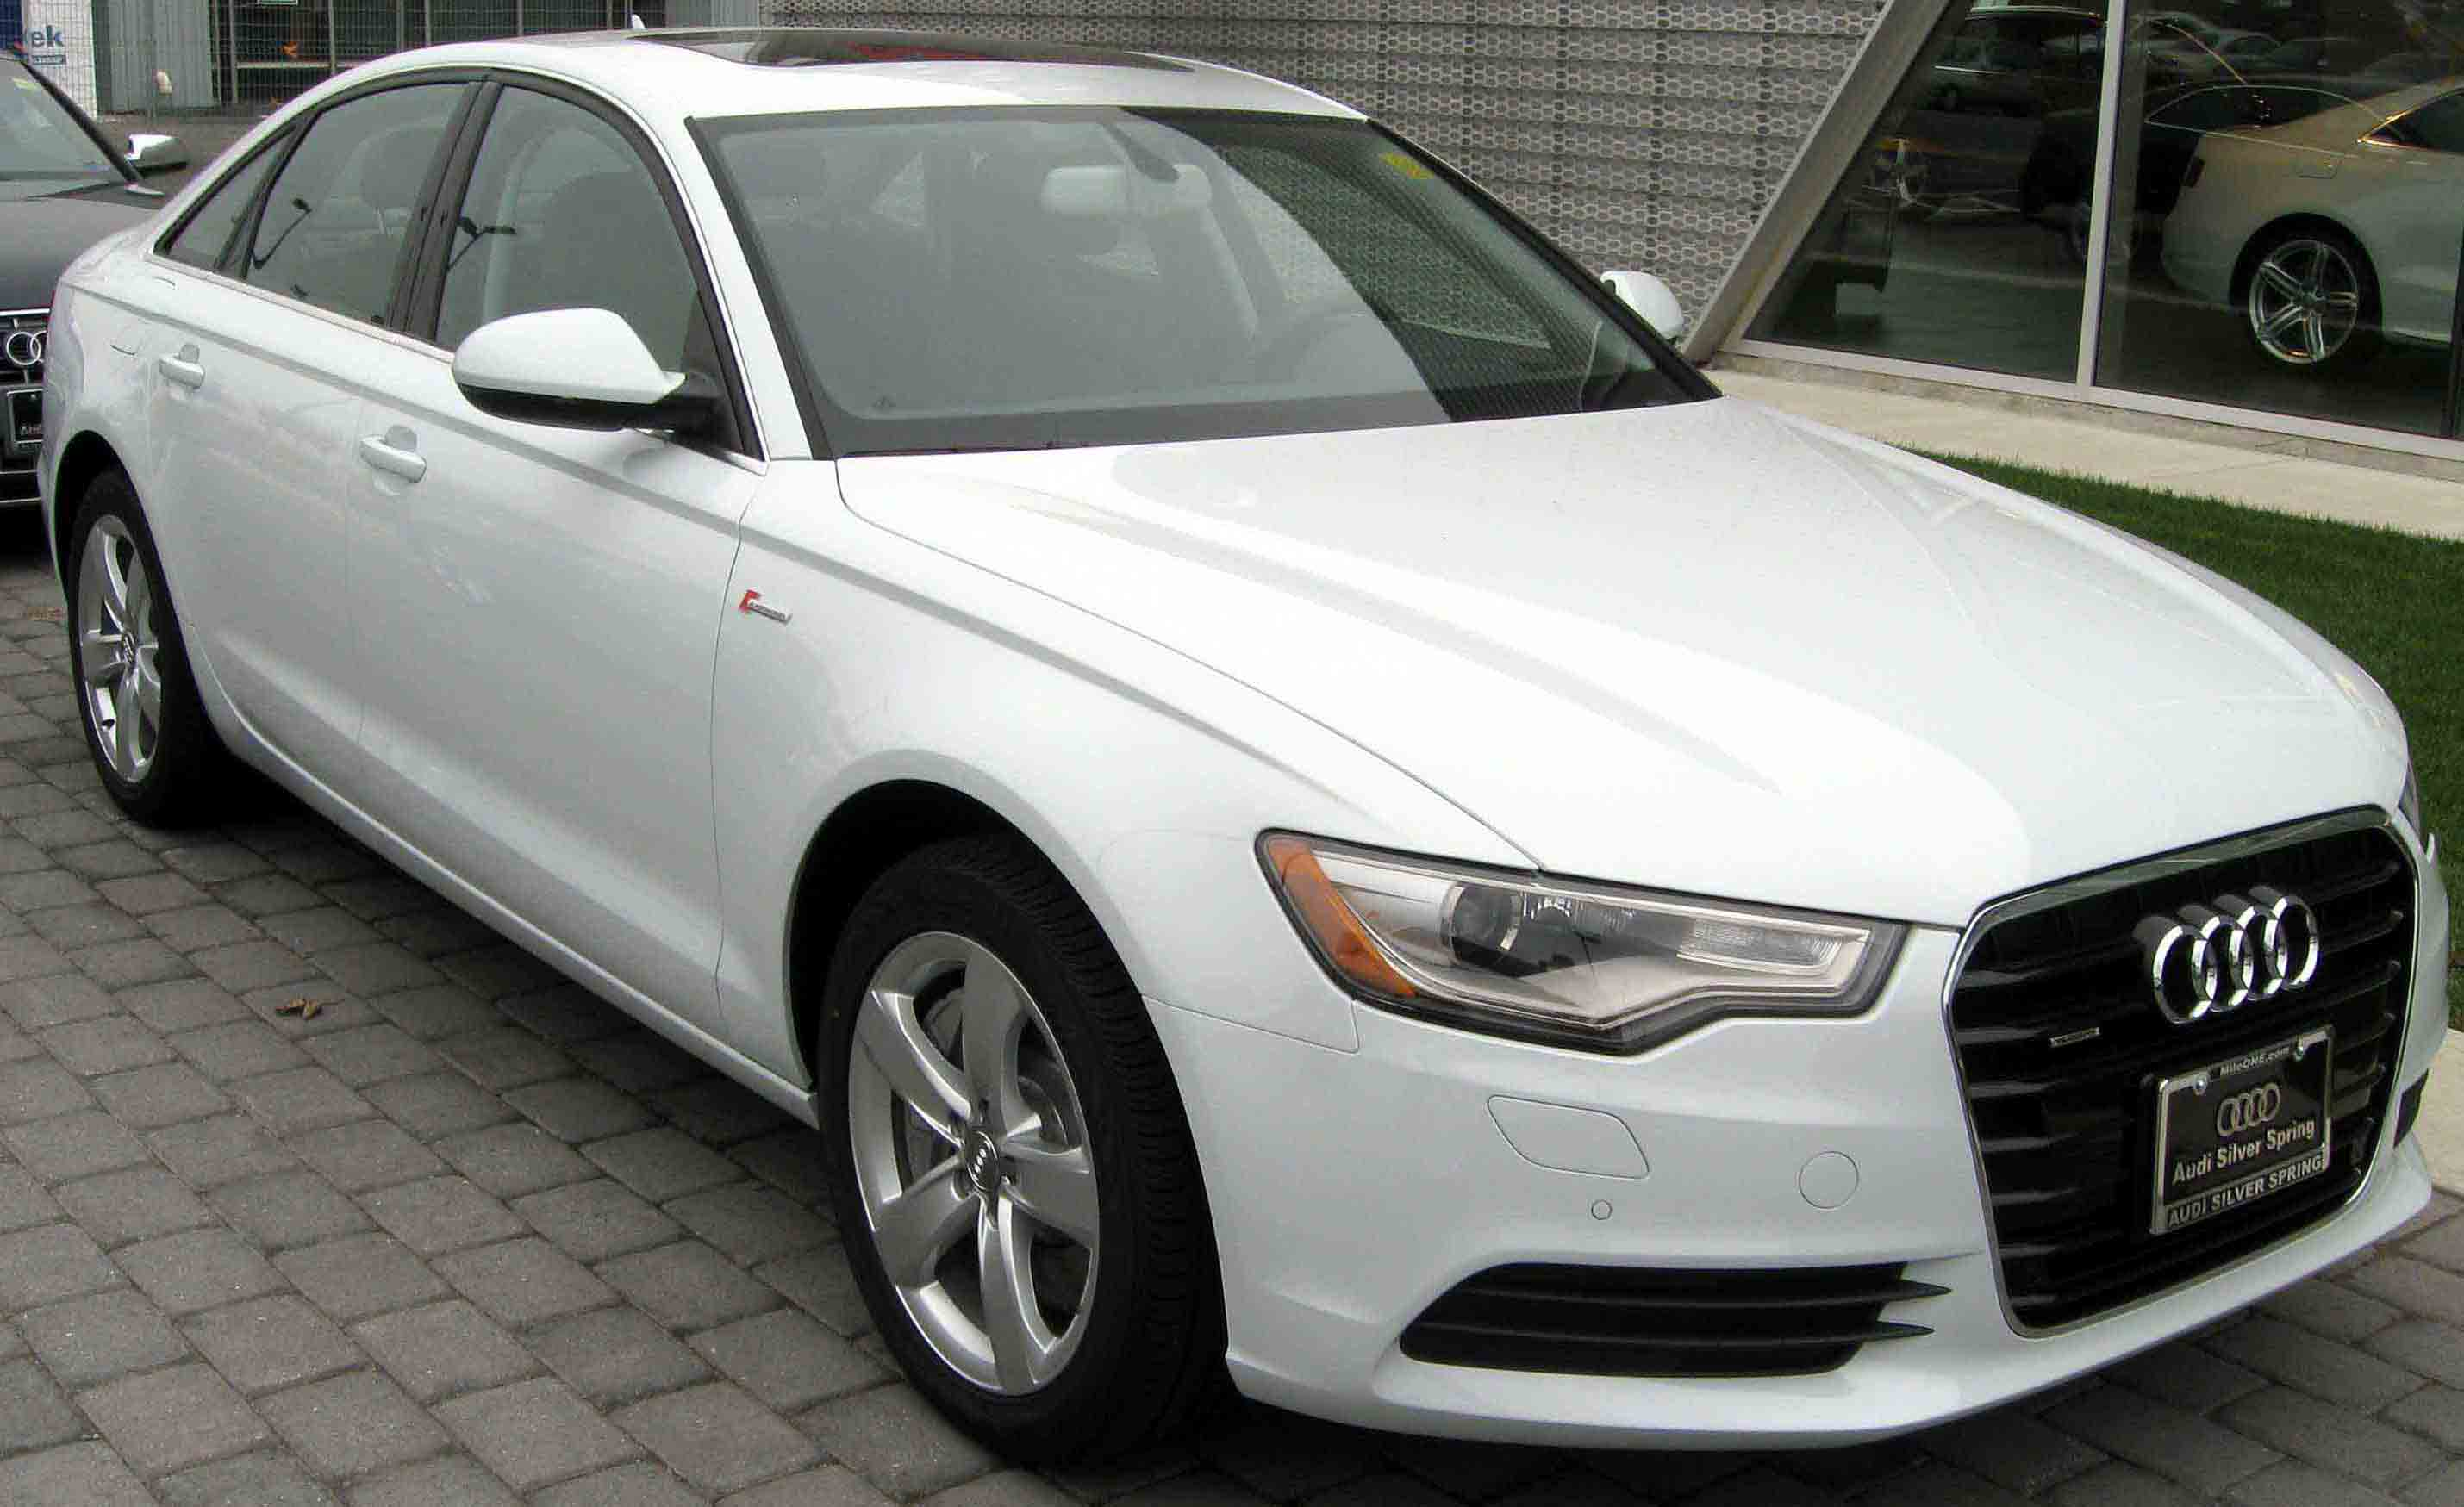 Audi A6 Power Steering Specialists